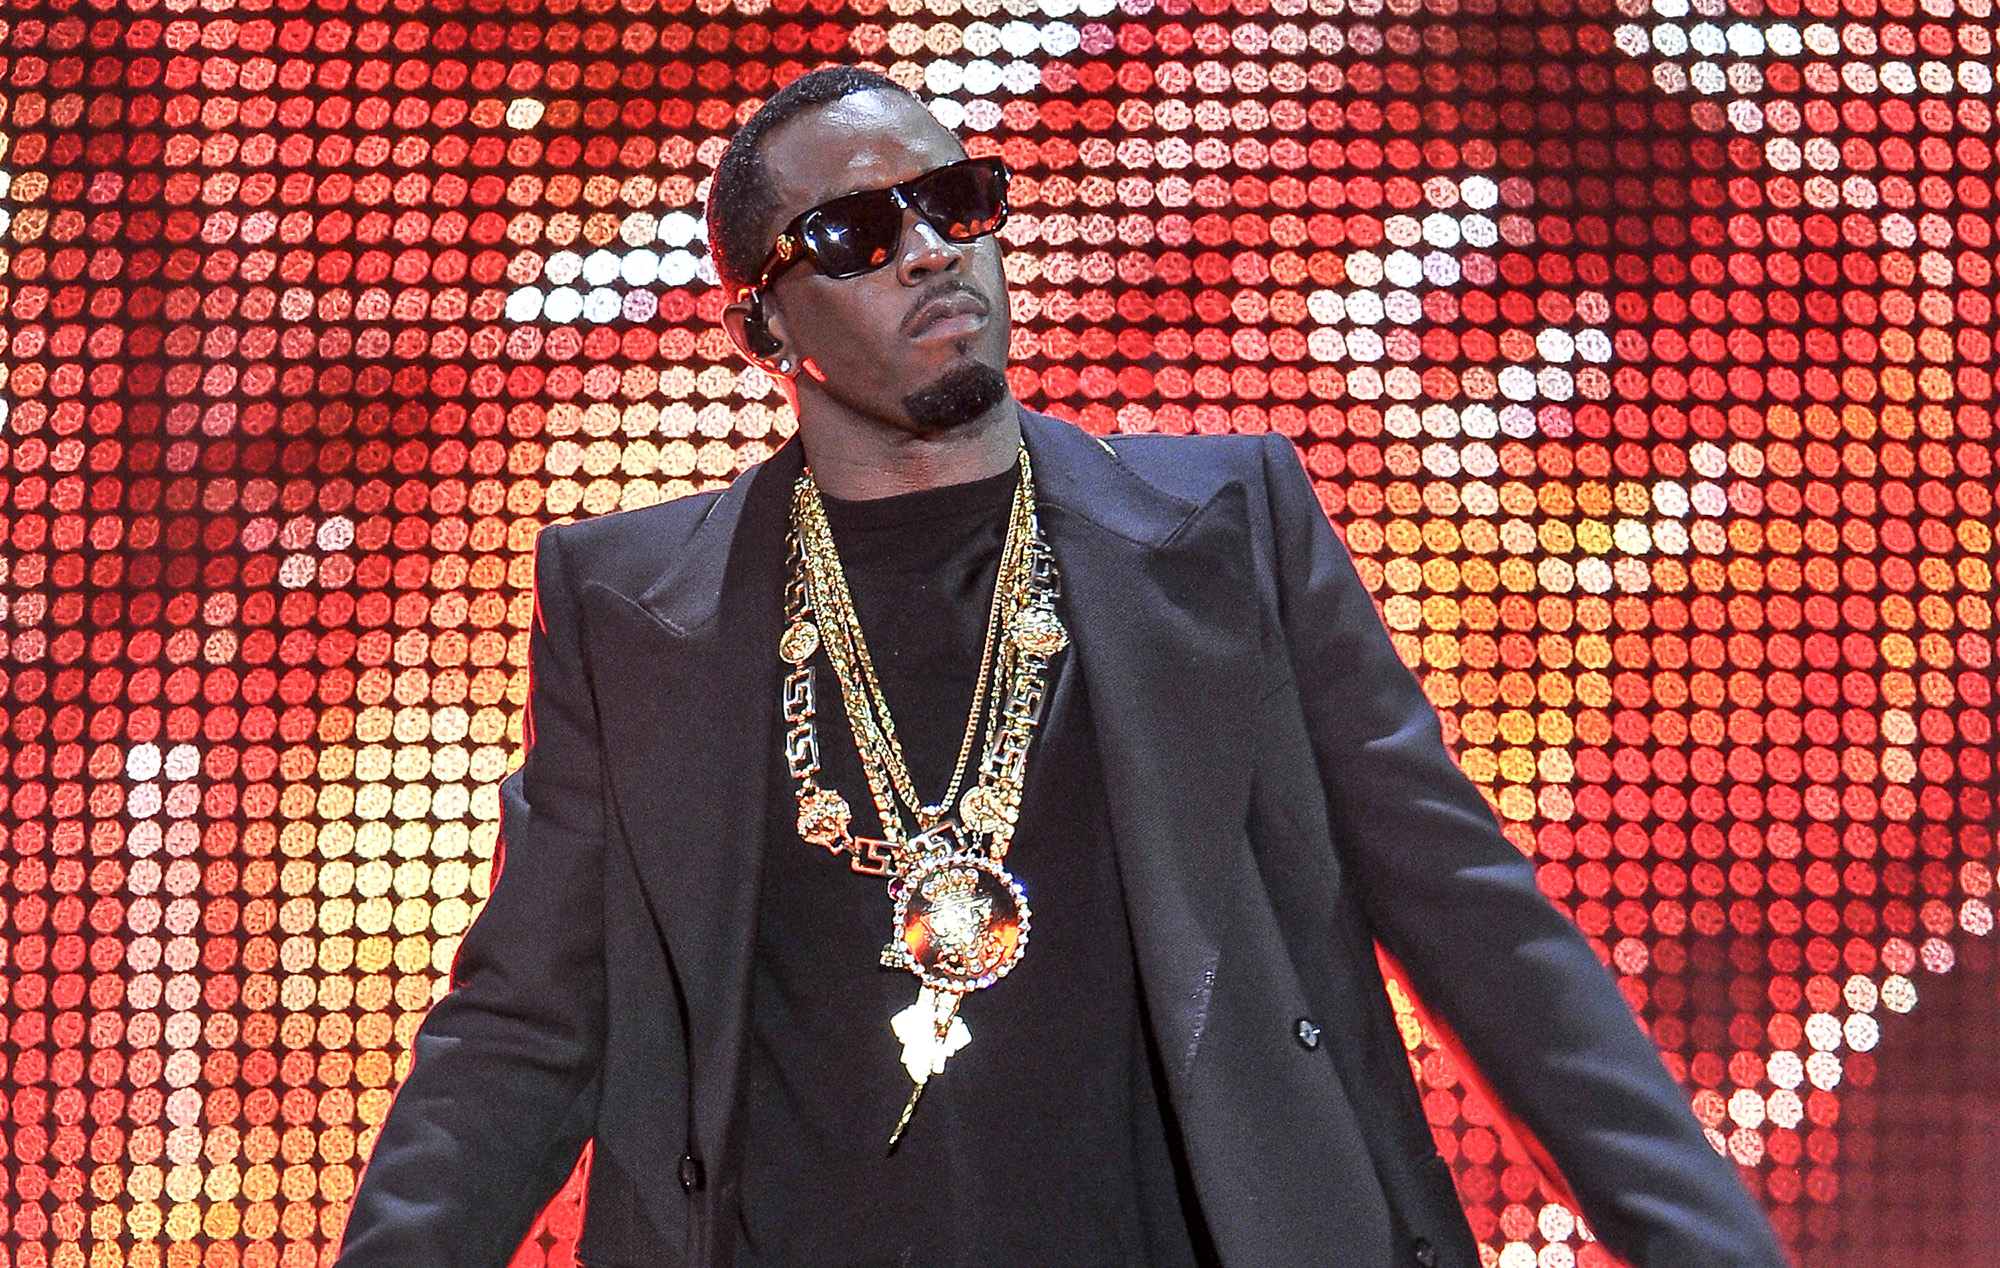 Sean  Puff Daddy  Combs performs at the Bad Boy Family Reunion Tour (Photo by Steve Jennings/Getty Images)